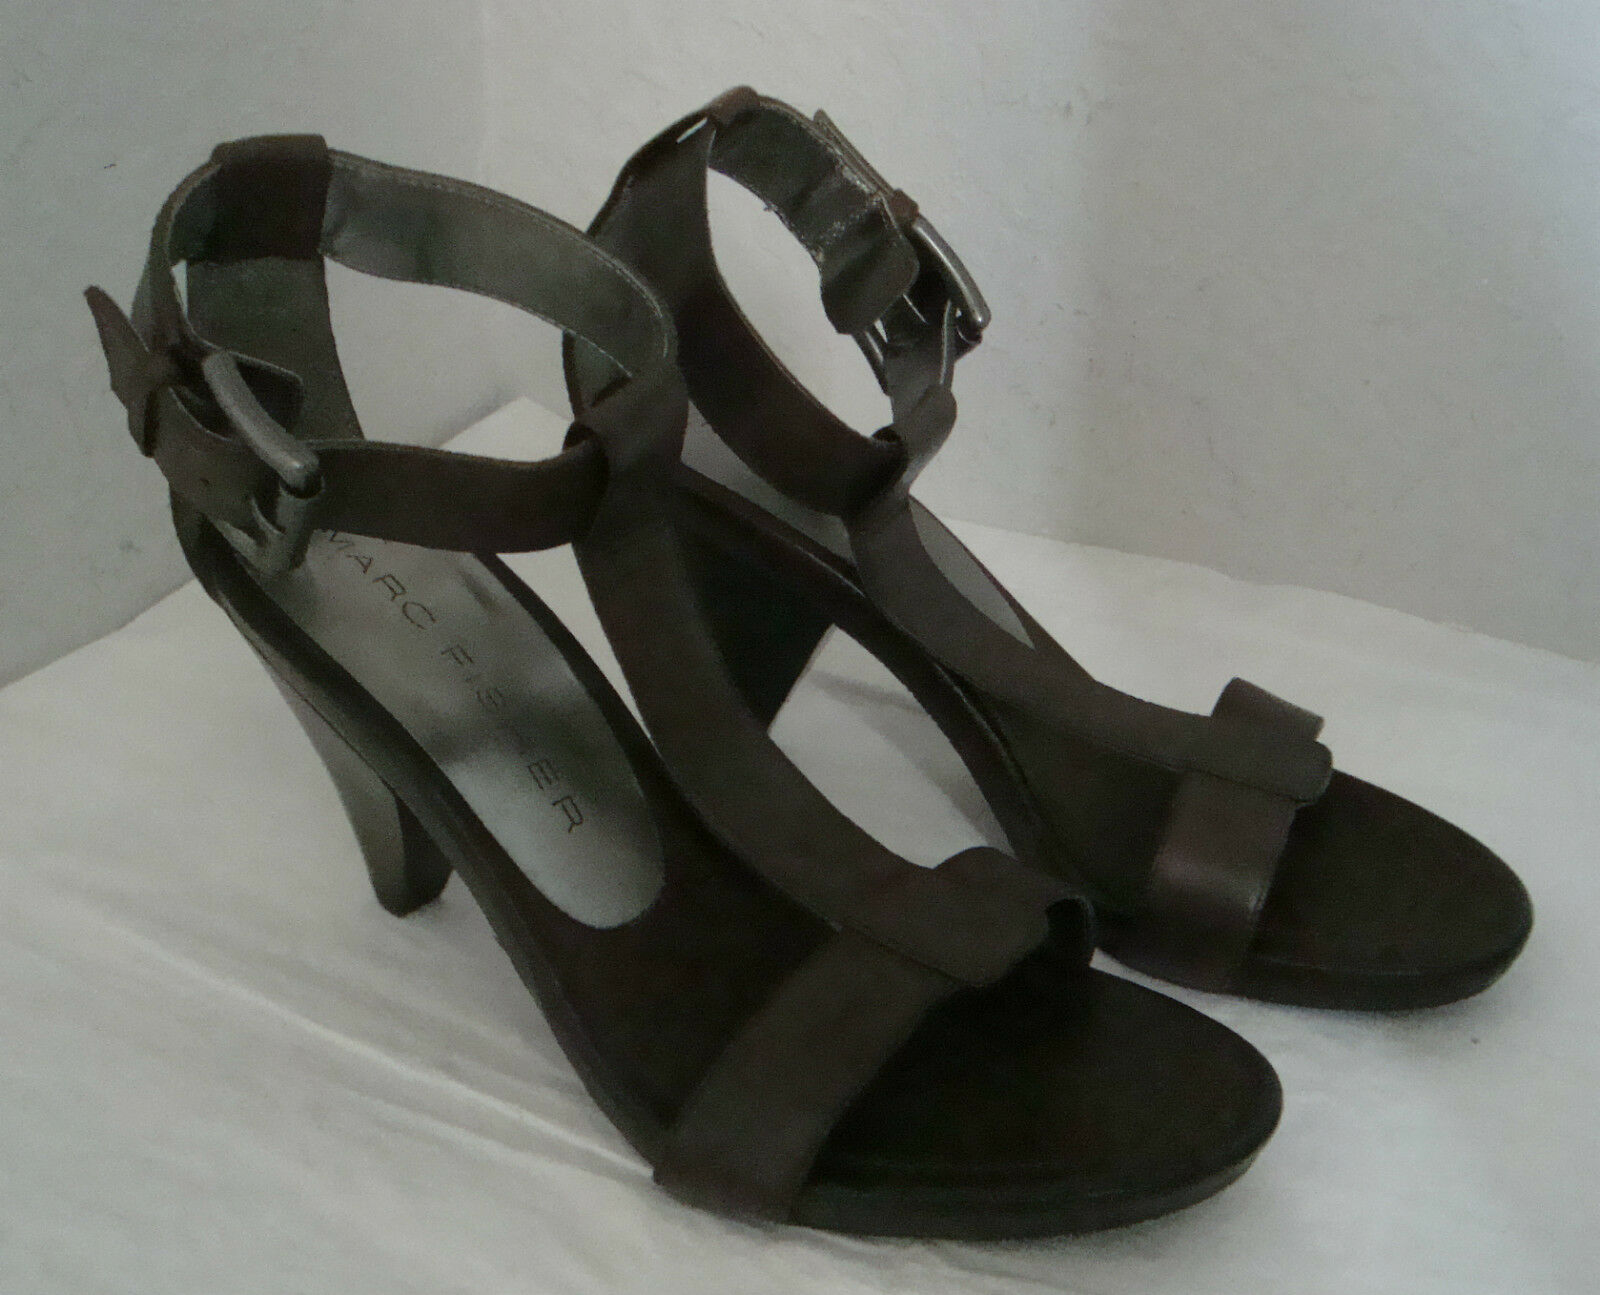 NEU Marc Fisher Damenschuhe Braun Sandales 7.5 Medium